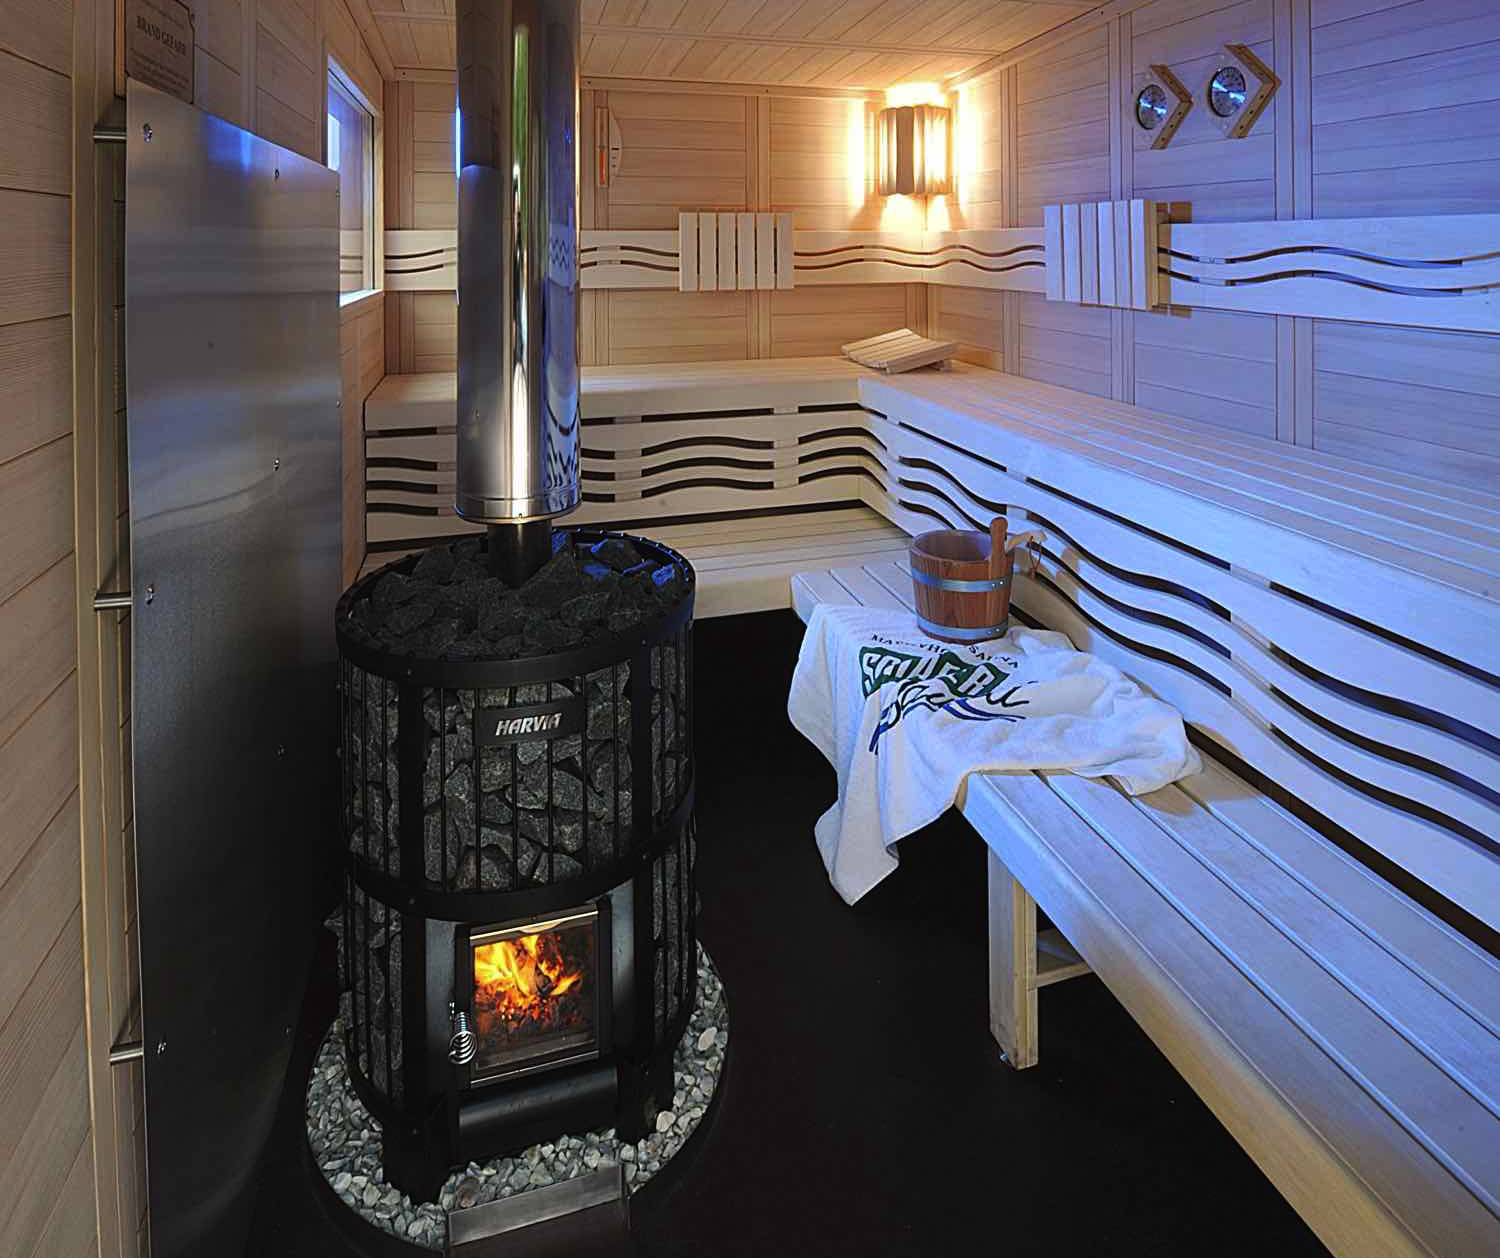 sch fer sauna. Black Bedroom Furniture Sets. Home Design Ideas